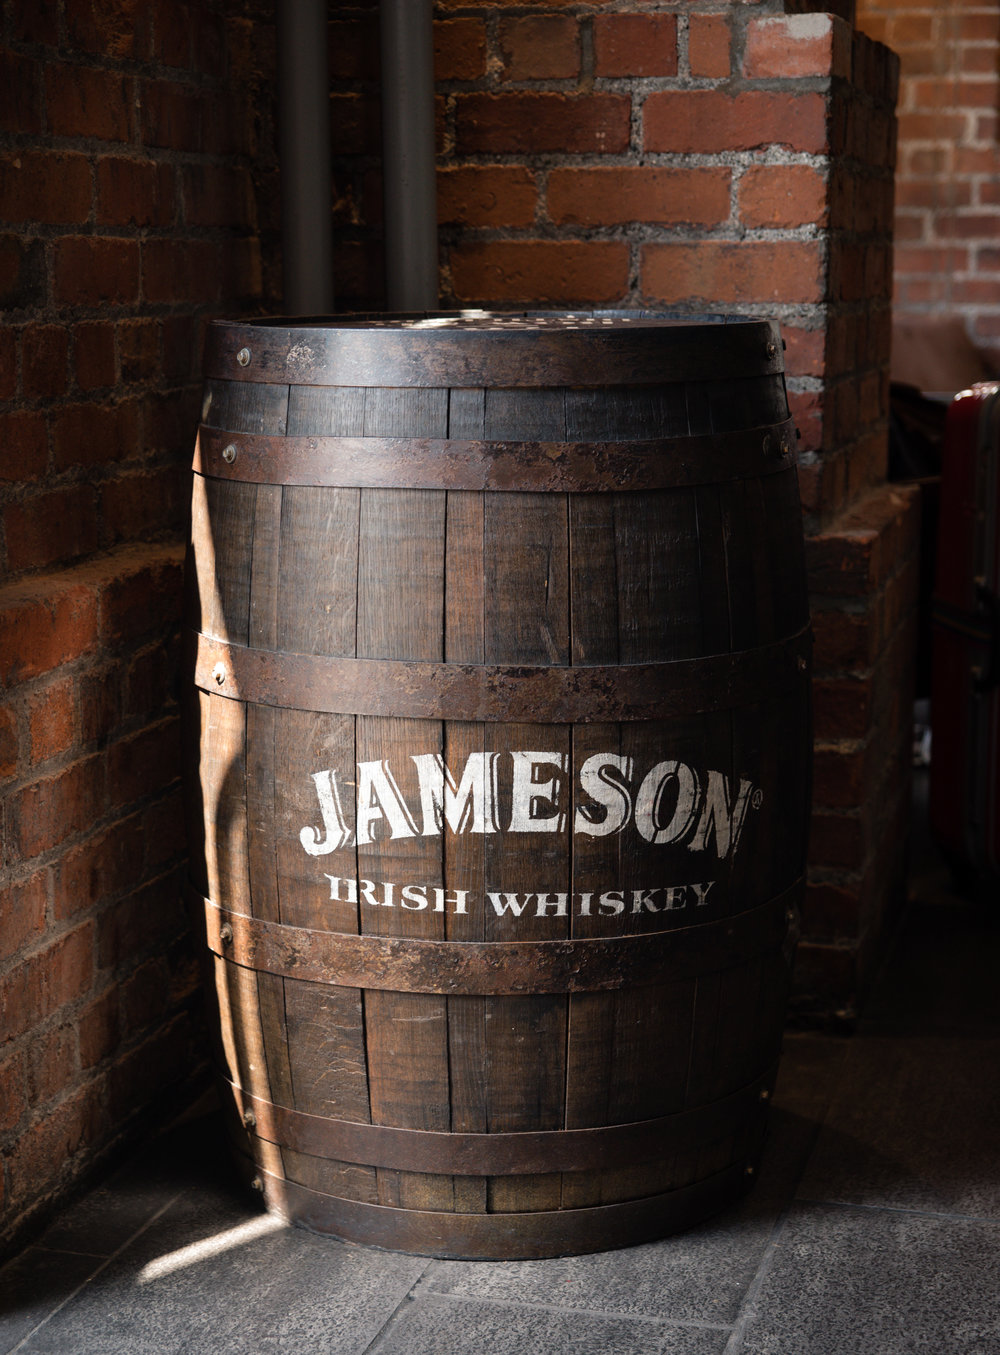 Jameson barrels also decorate the main gathering area. The Jameson Distillery is right next door to the hostel.